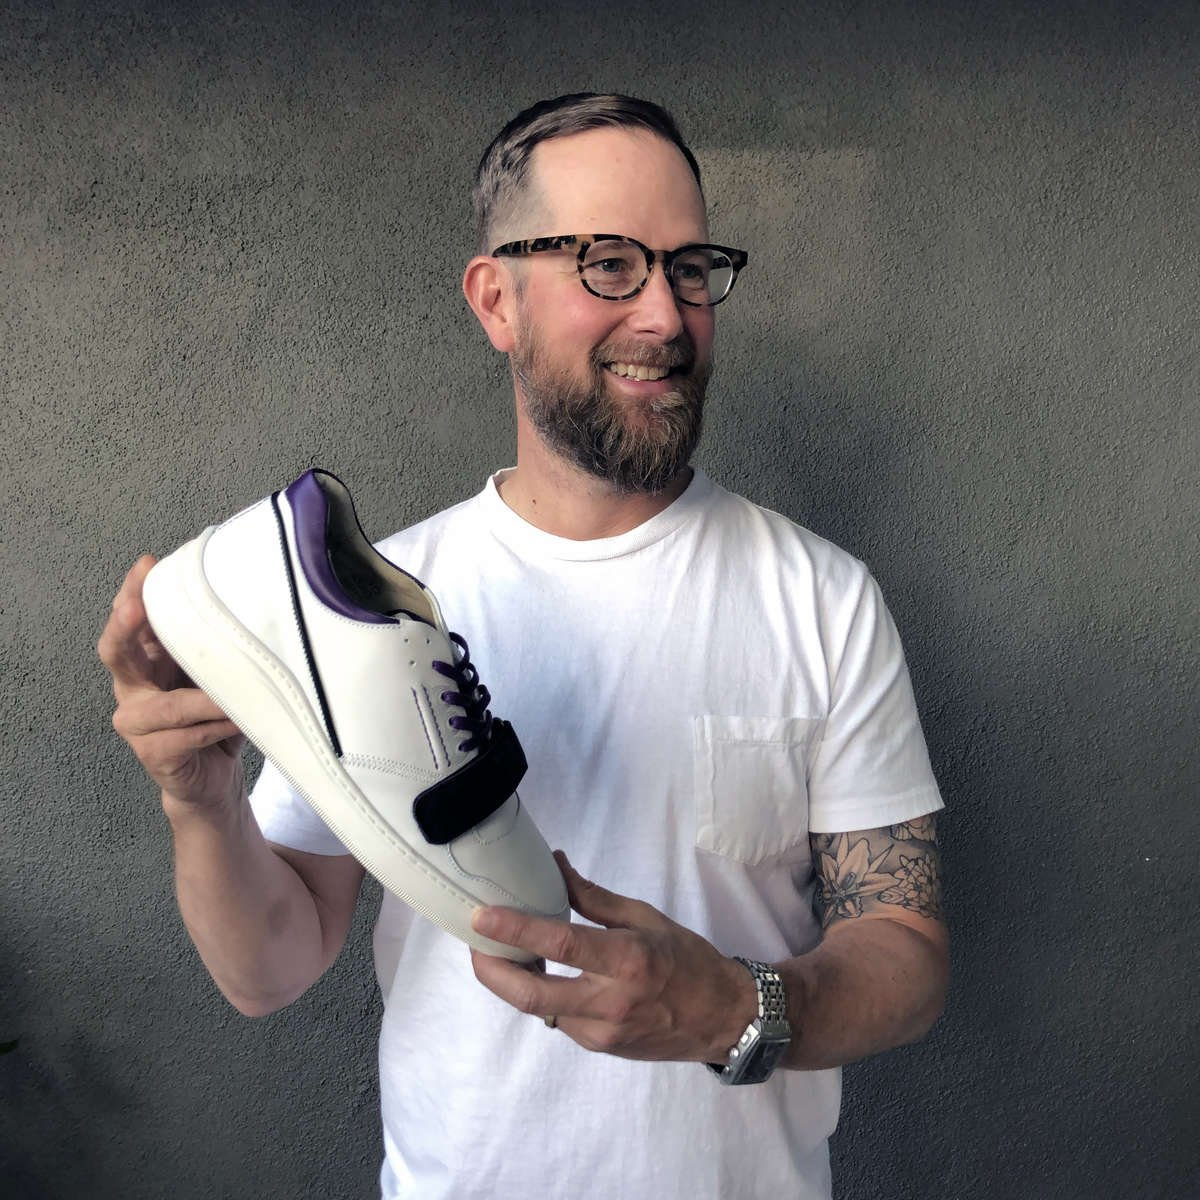 Premium sneakers founder and CEO Eric Sarin